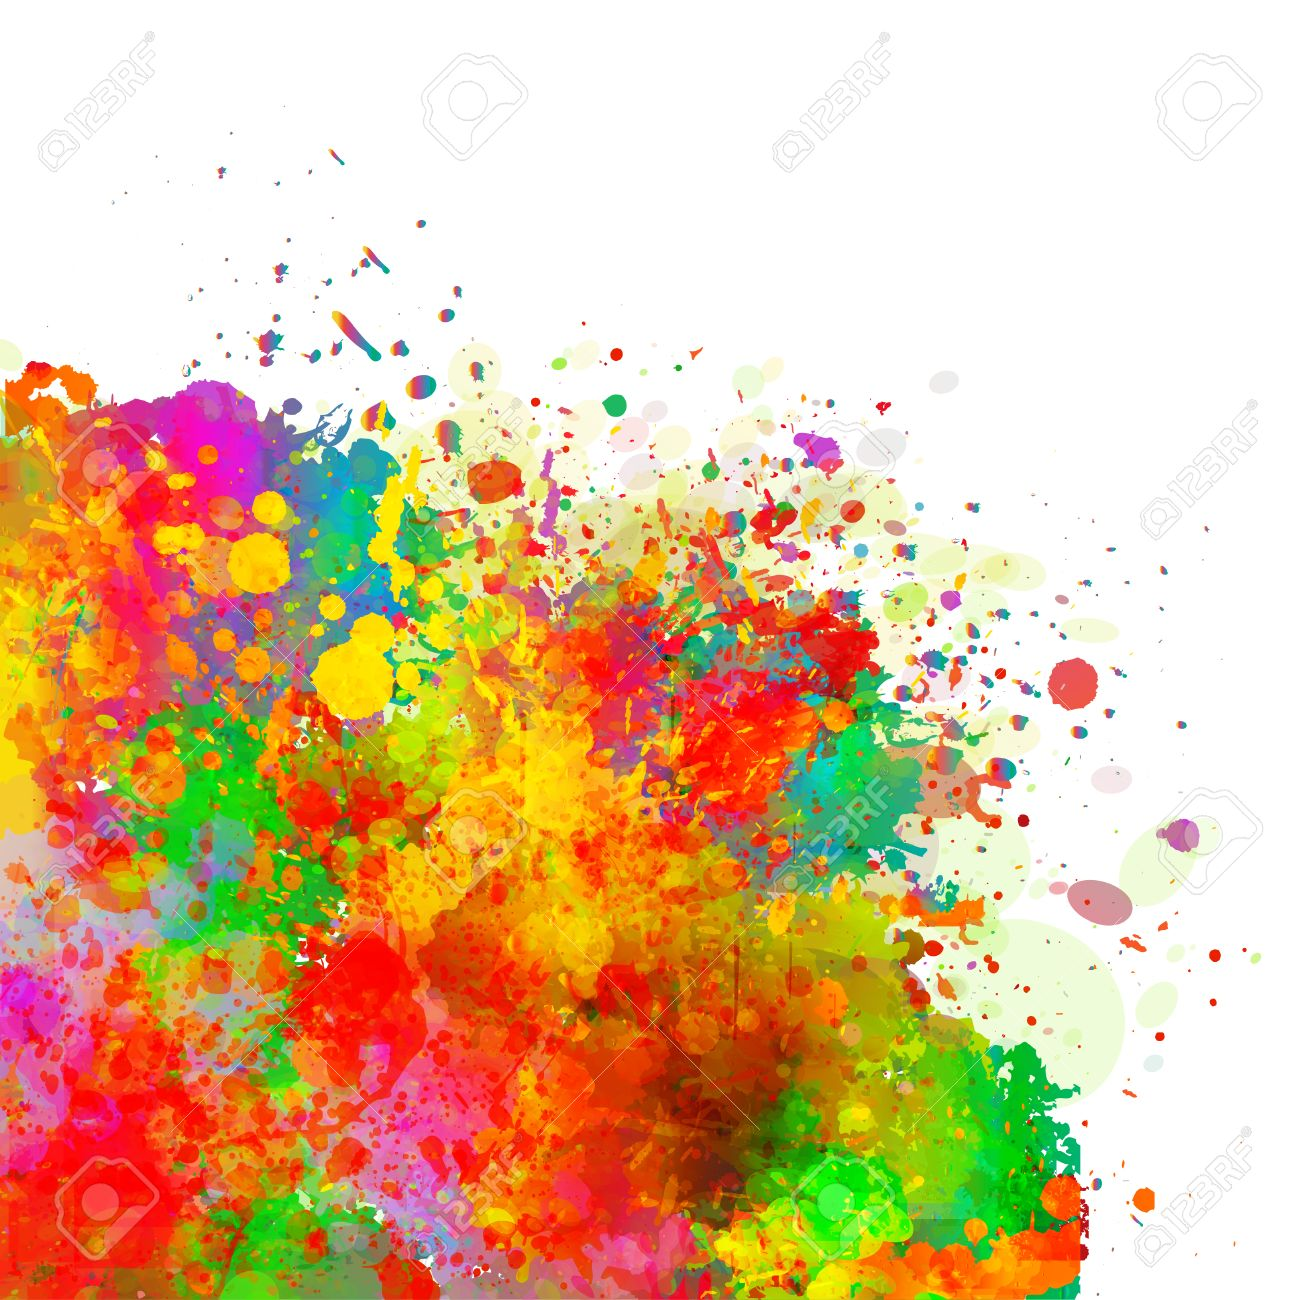 Watercolor Splash Background - Abstract Colorful Splash Background. Watercolor Background ...